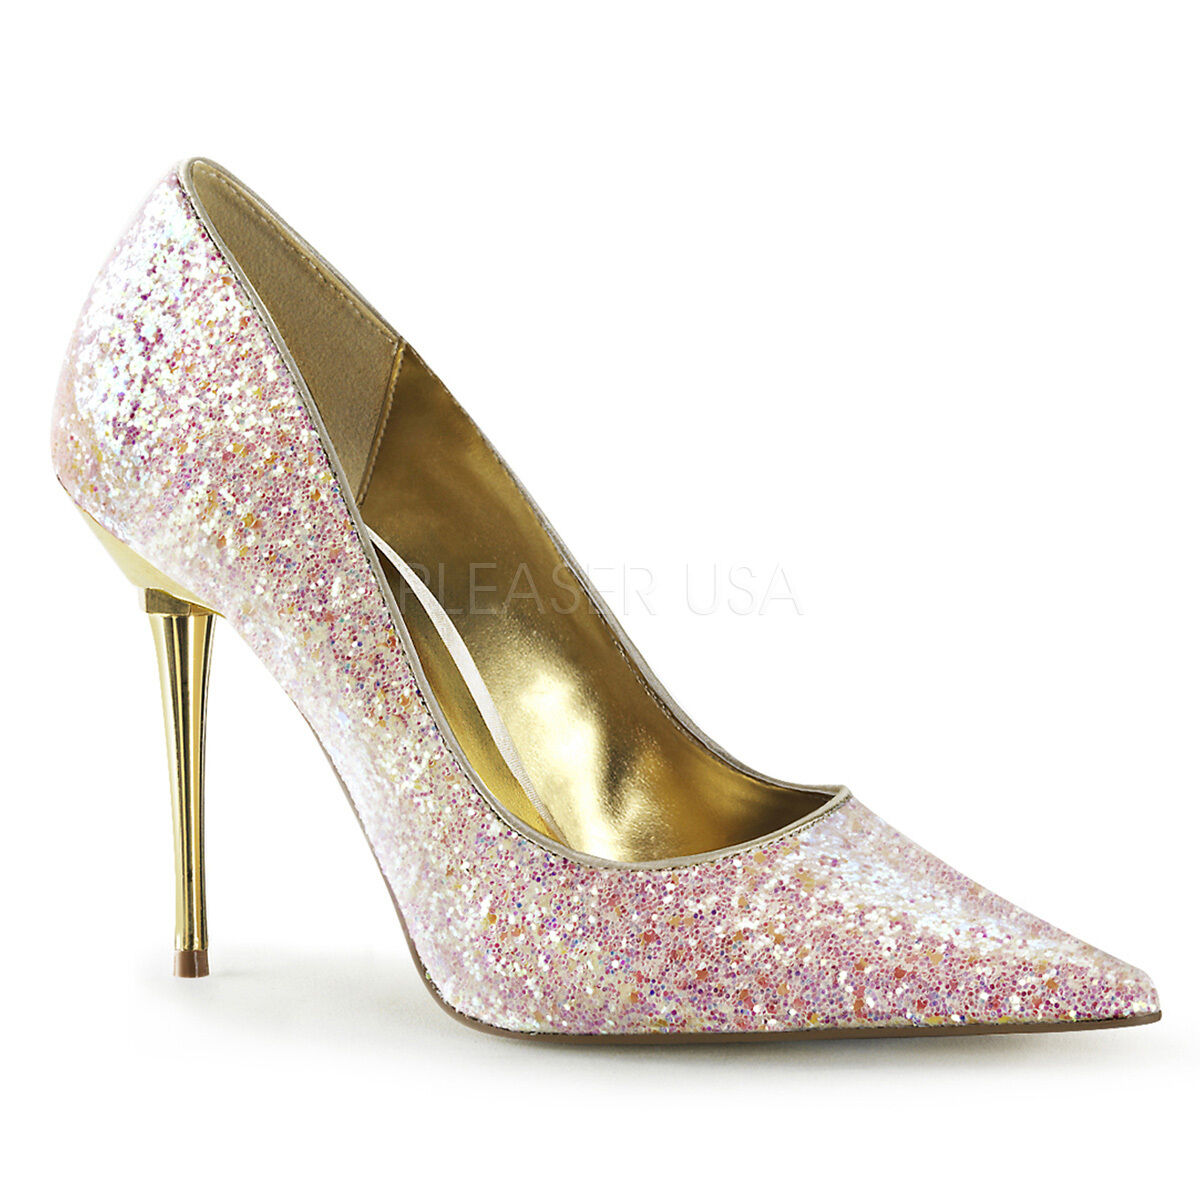 Appeal Rose Glitter Pointy Toe 4  Metal High Stiletto Heels chaussures Pump 5-16